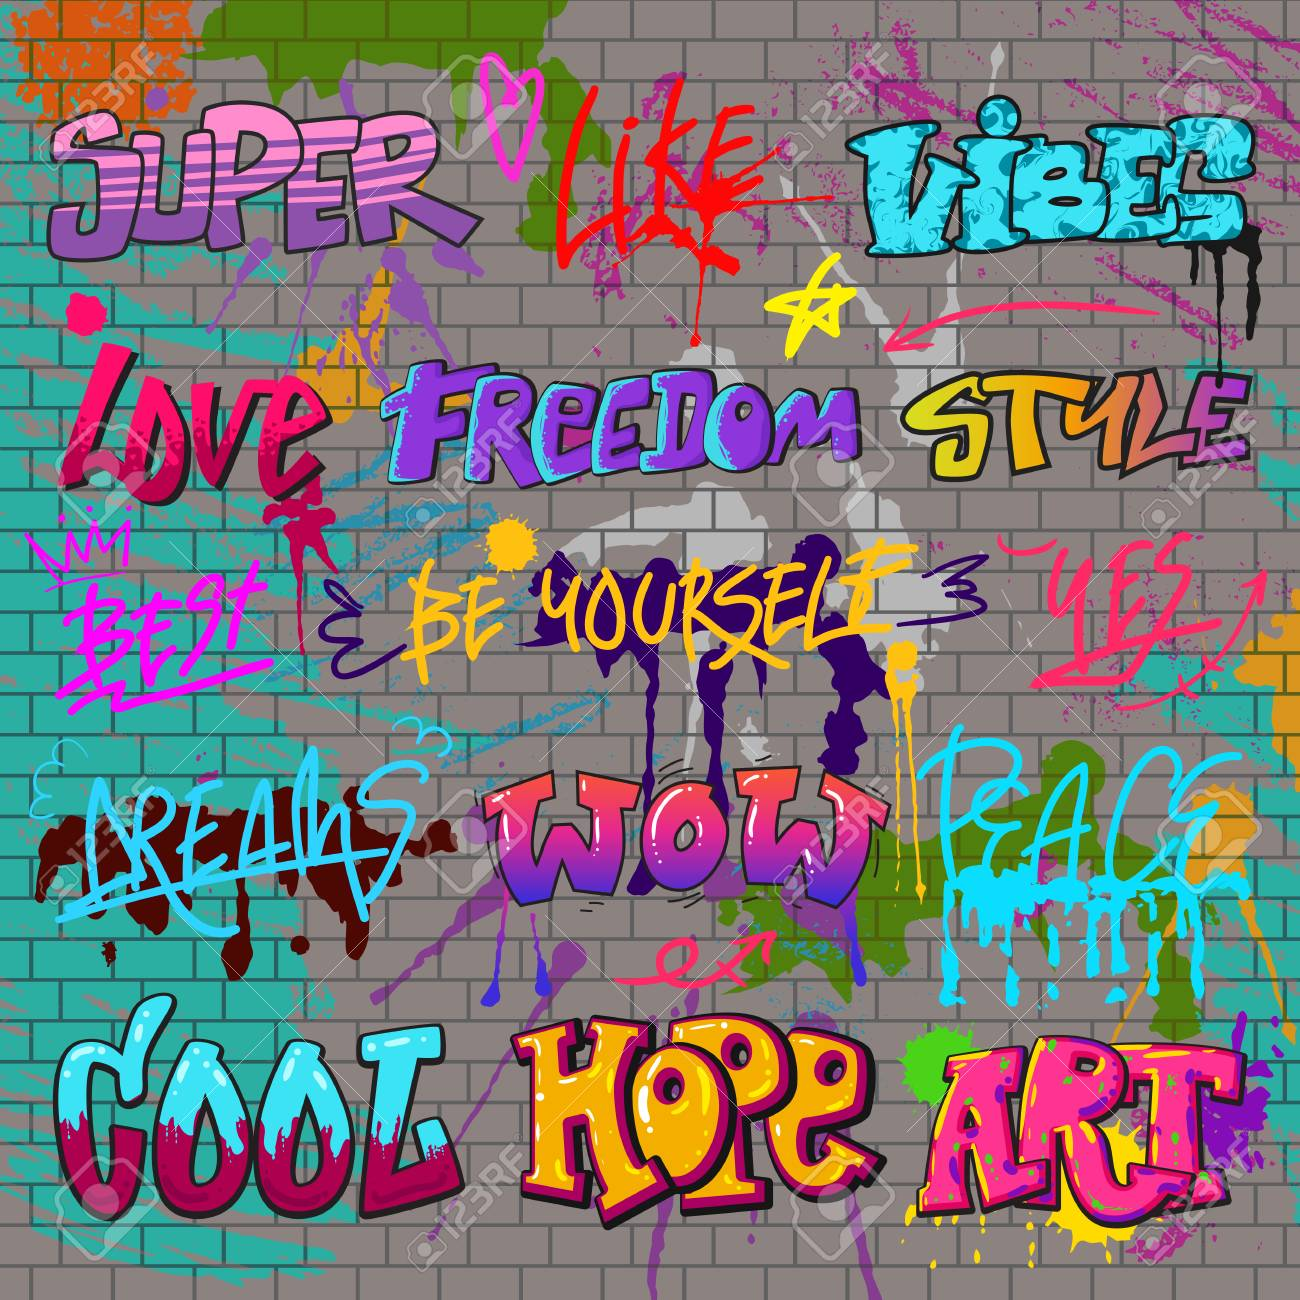 Graffiti vector graffito of brushstroke lettering or graphic grunge typography illustration set of street text with love freedom. Isolated on brick wall background. - 98852081